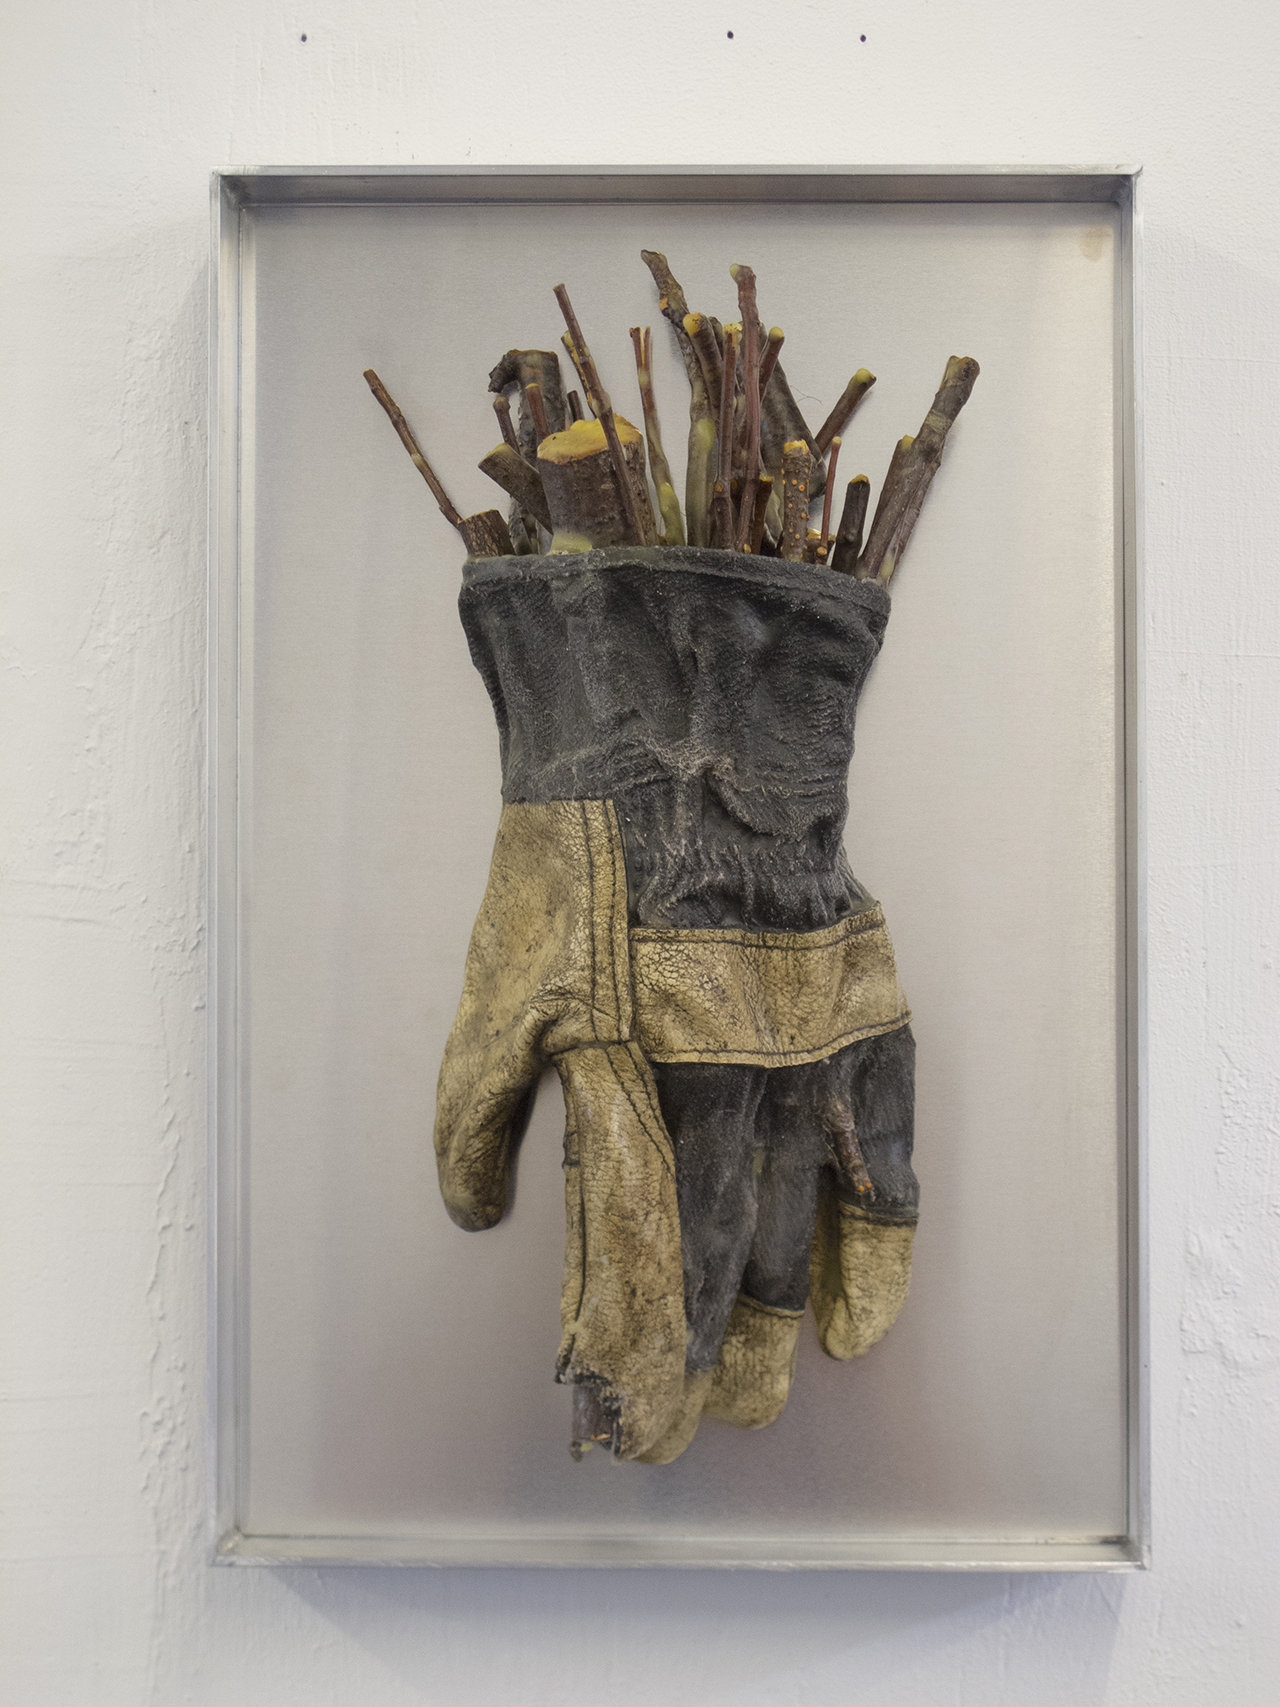 Pedro Wirz  Rat King  Old letter glove, beeswax, twigs  36 cm x 24 cm x 11 cm ( 14 in x 9.5 in x 4.3 in )  2018